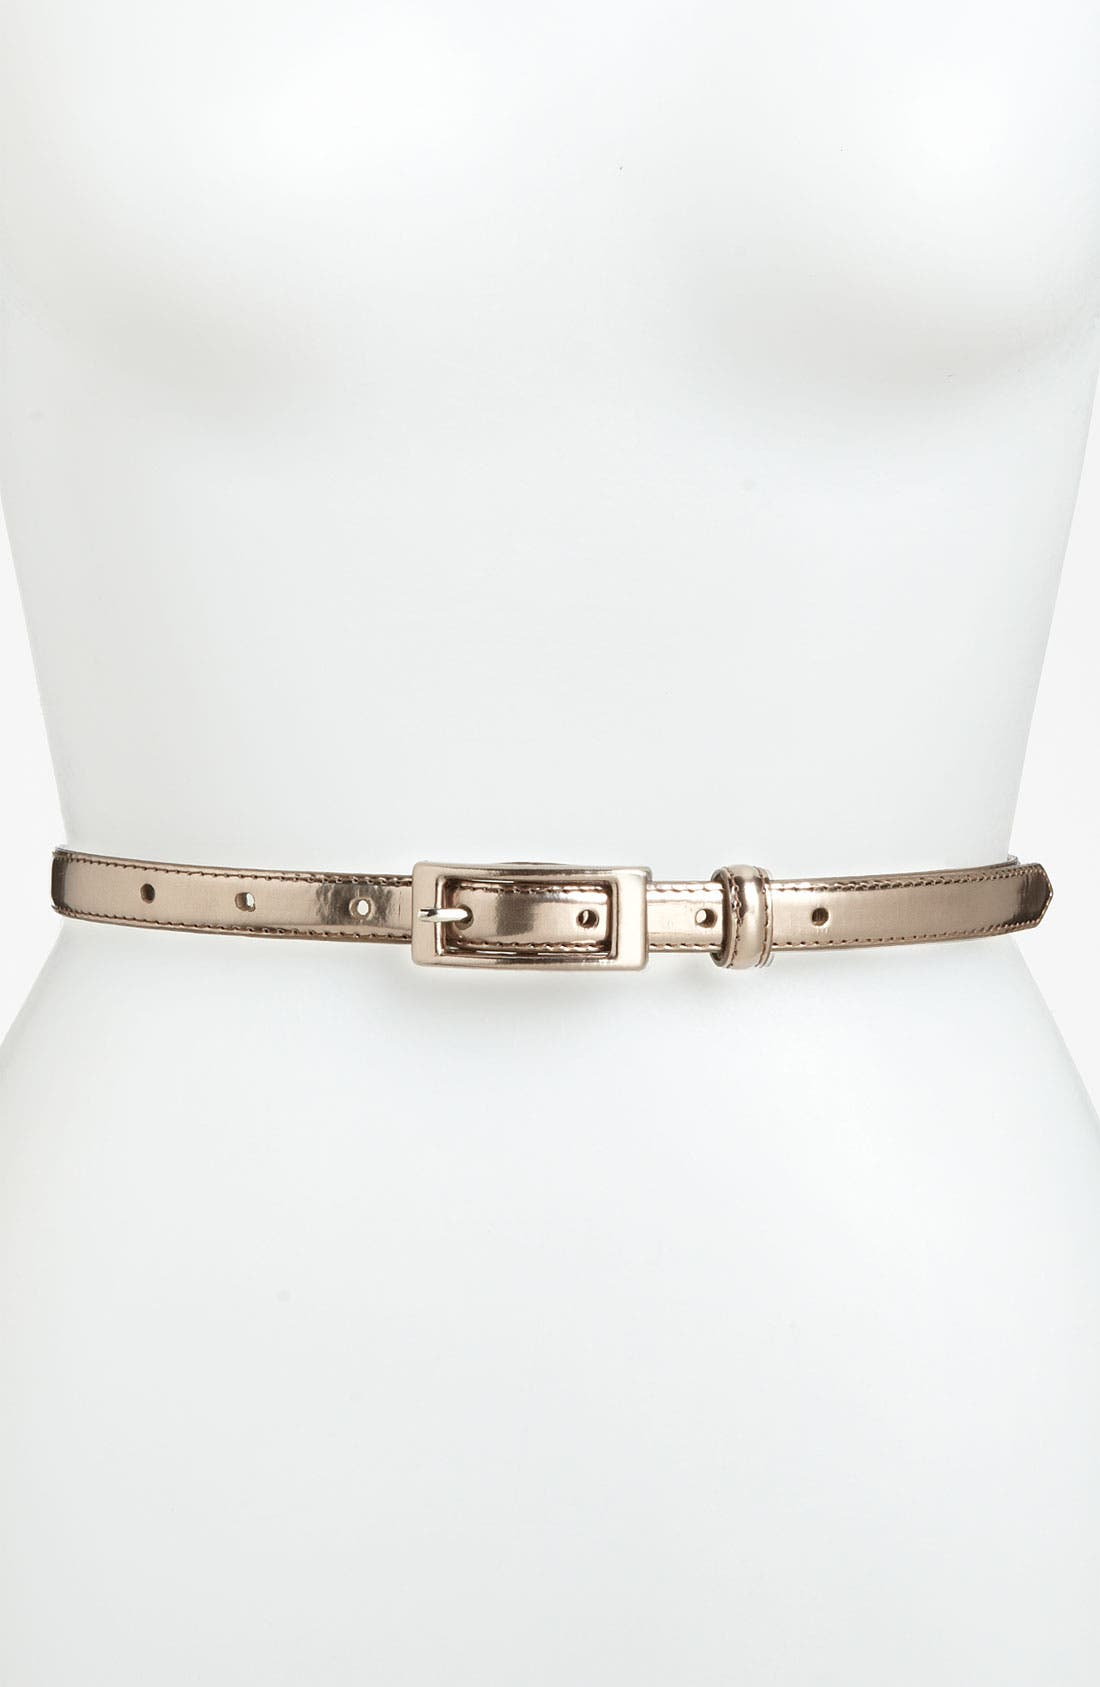 Alternate Image 1 Selected - Another Line Skinny Belt